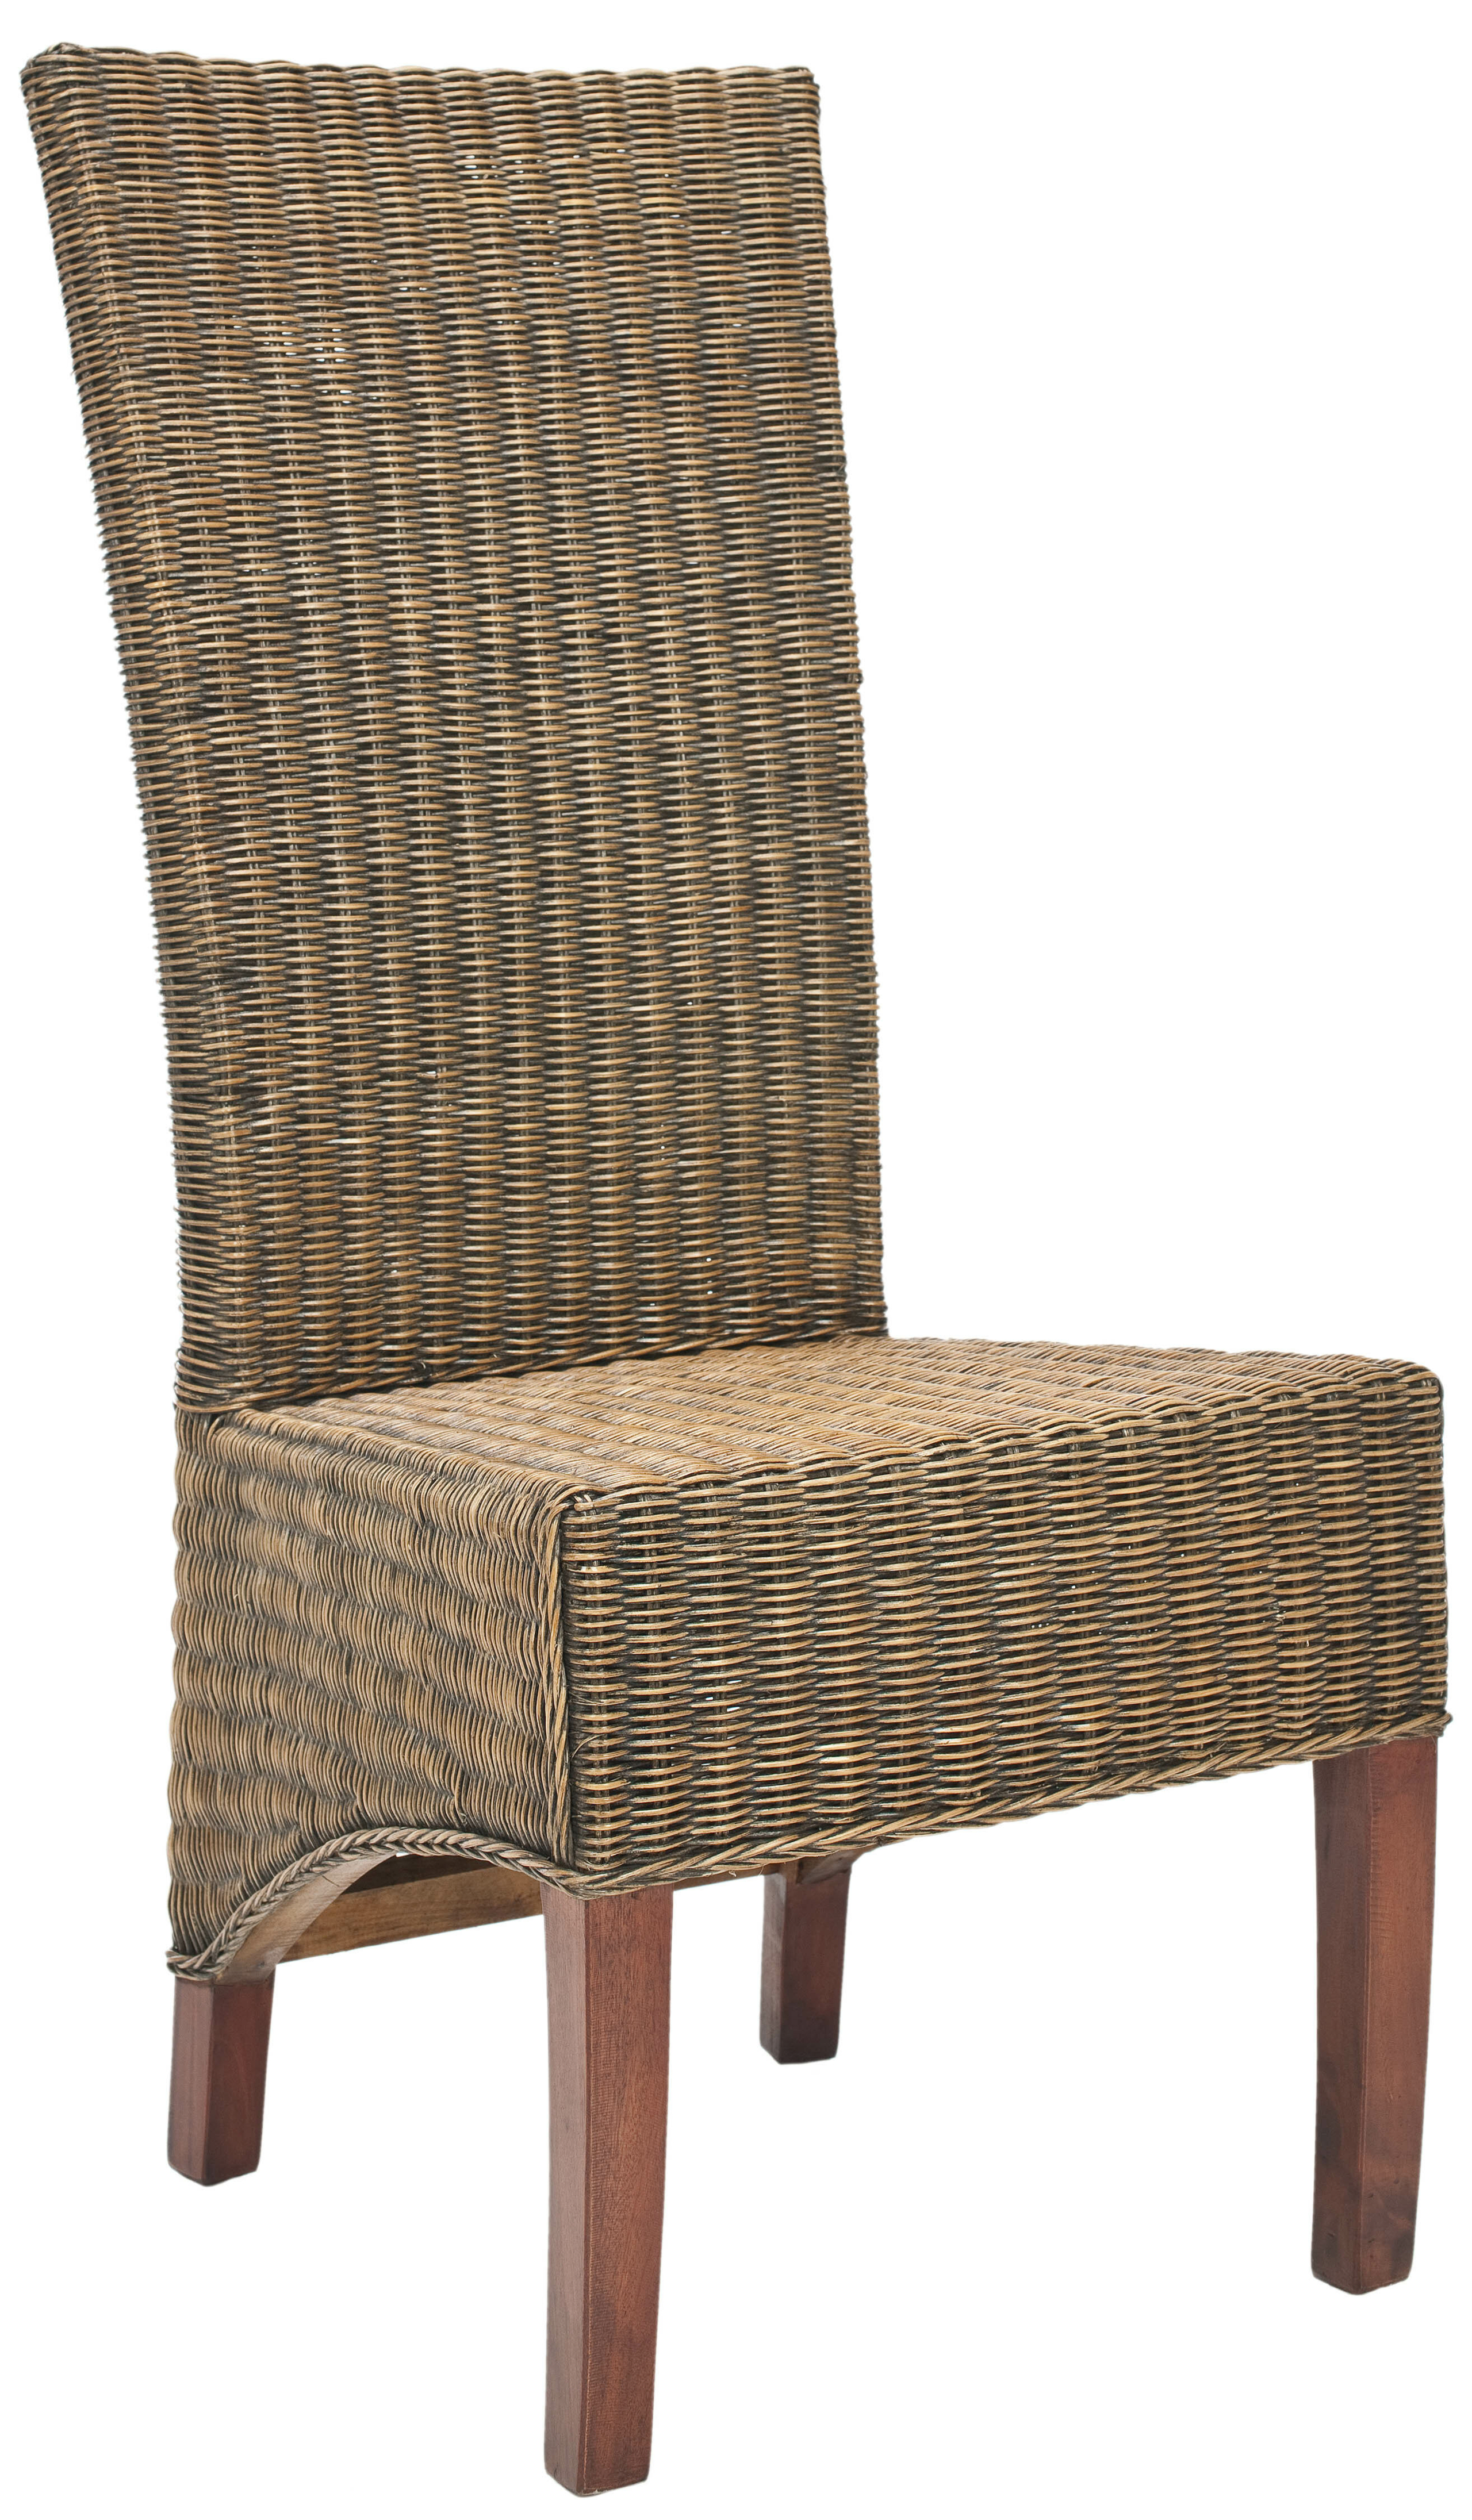 Gouldsboro Wicker Parson Chairs (Set of 2)